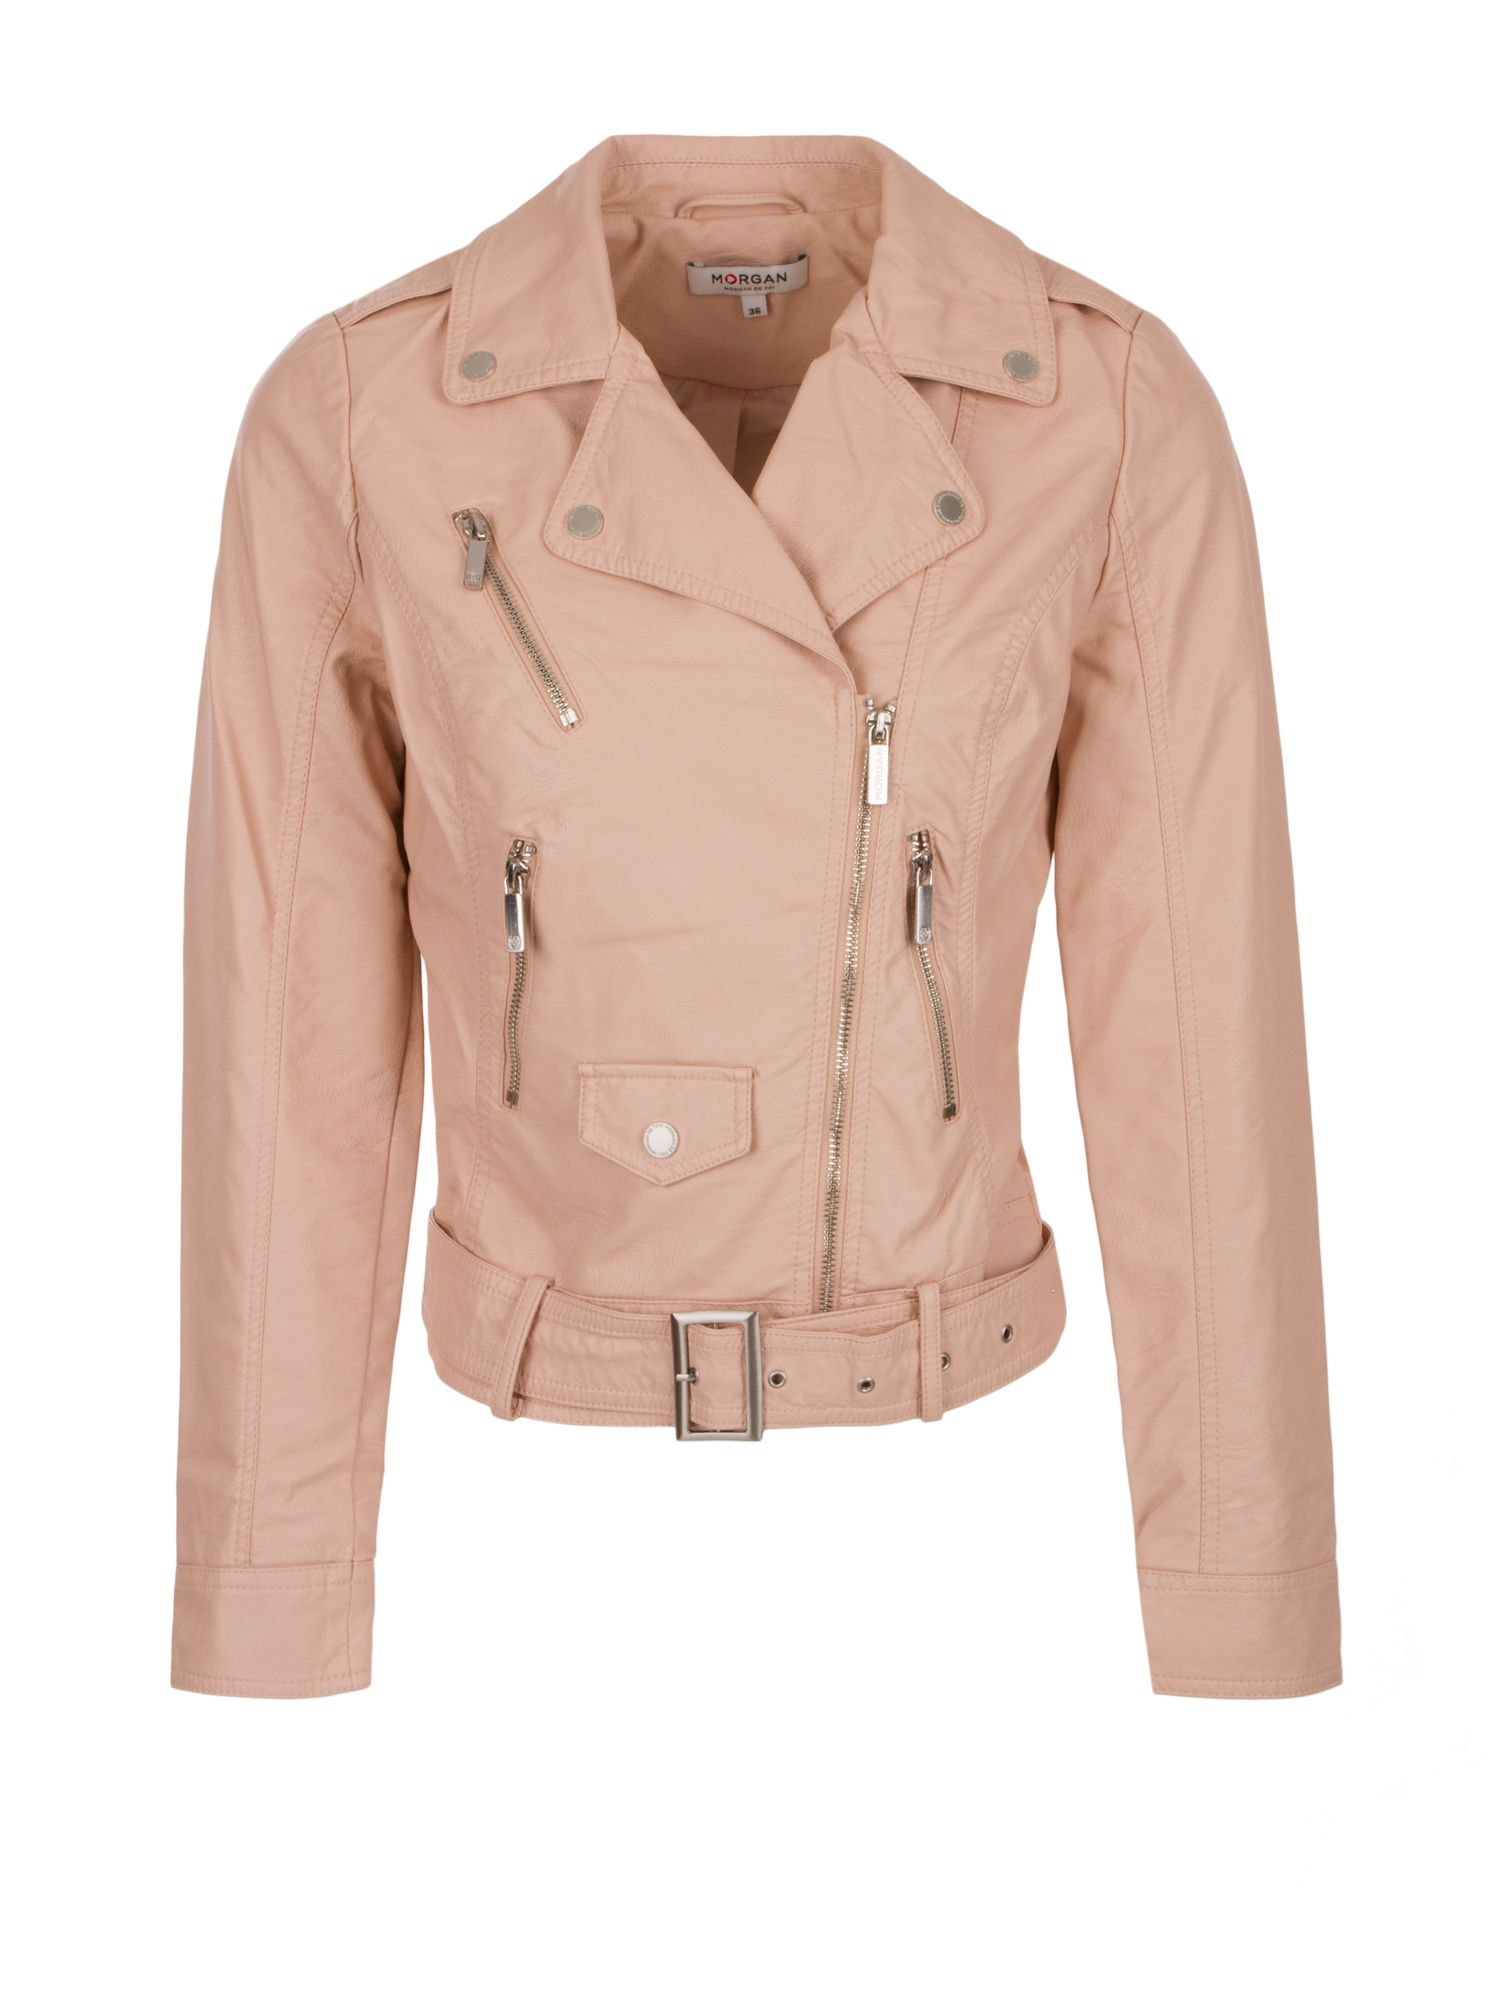 Morgan Faux Leather Bike Style Jacket, Light Pink